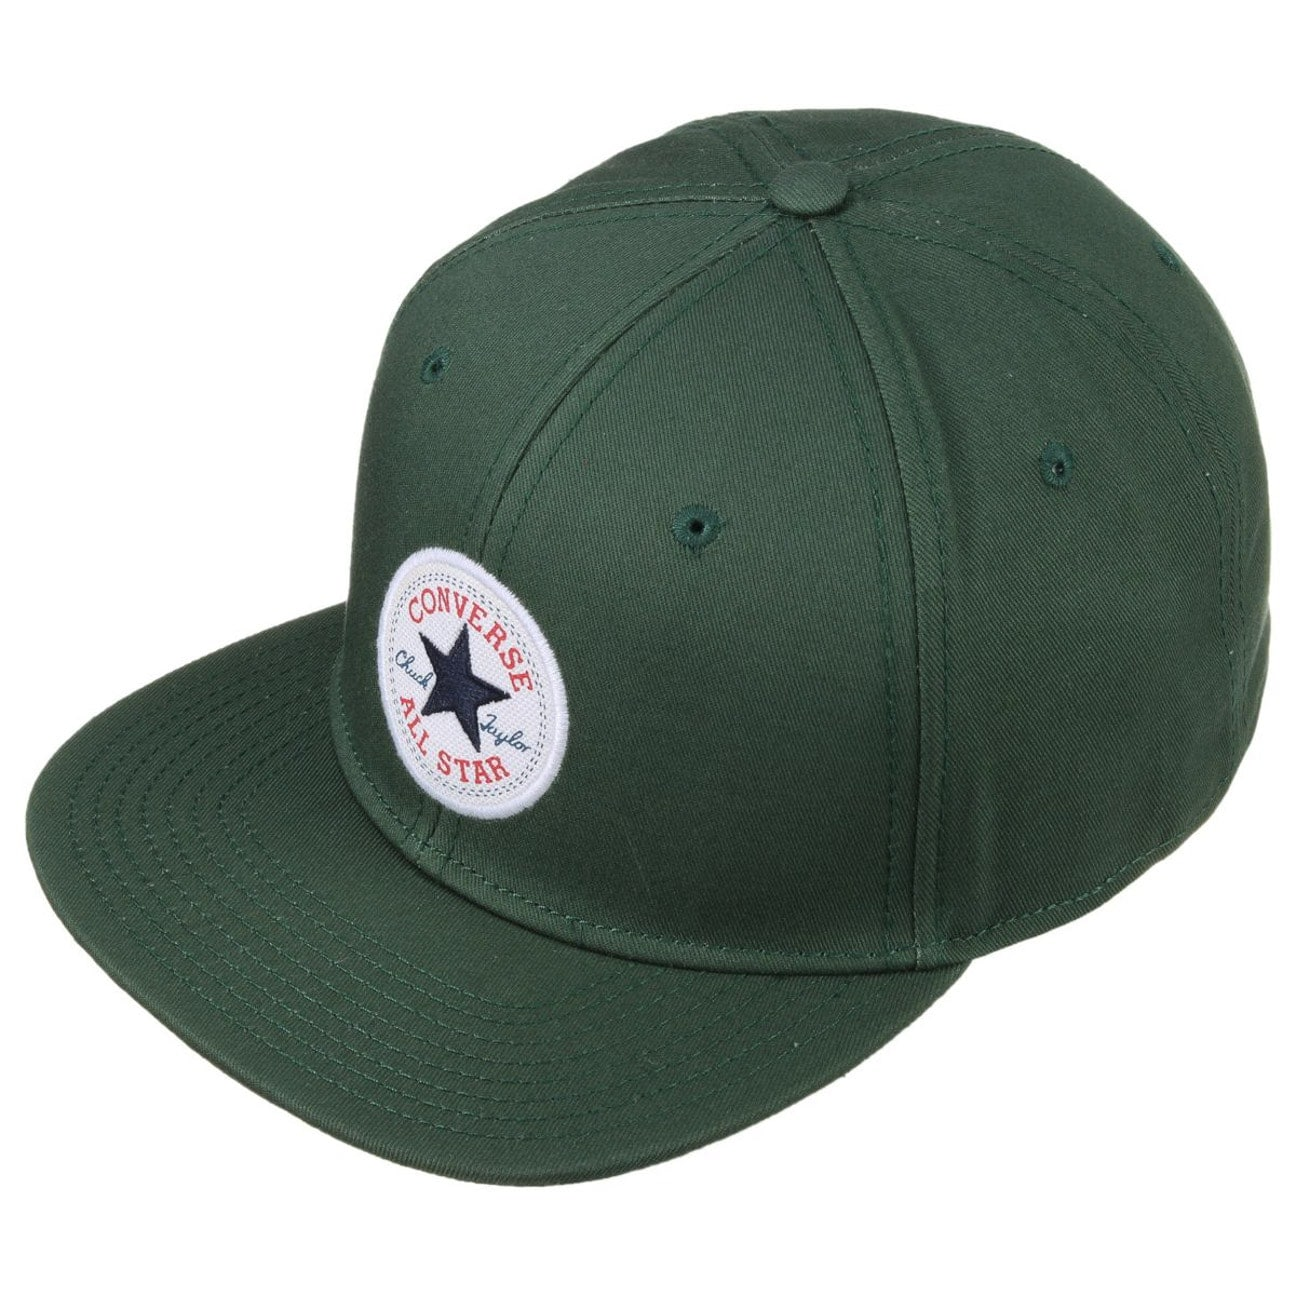 ... Core Twill Snapback Cap by Converse - dark green 2 ... 722dc8d8988